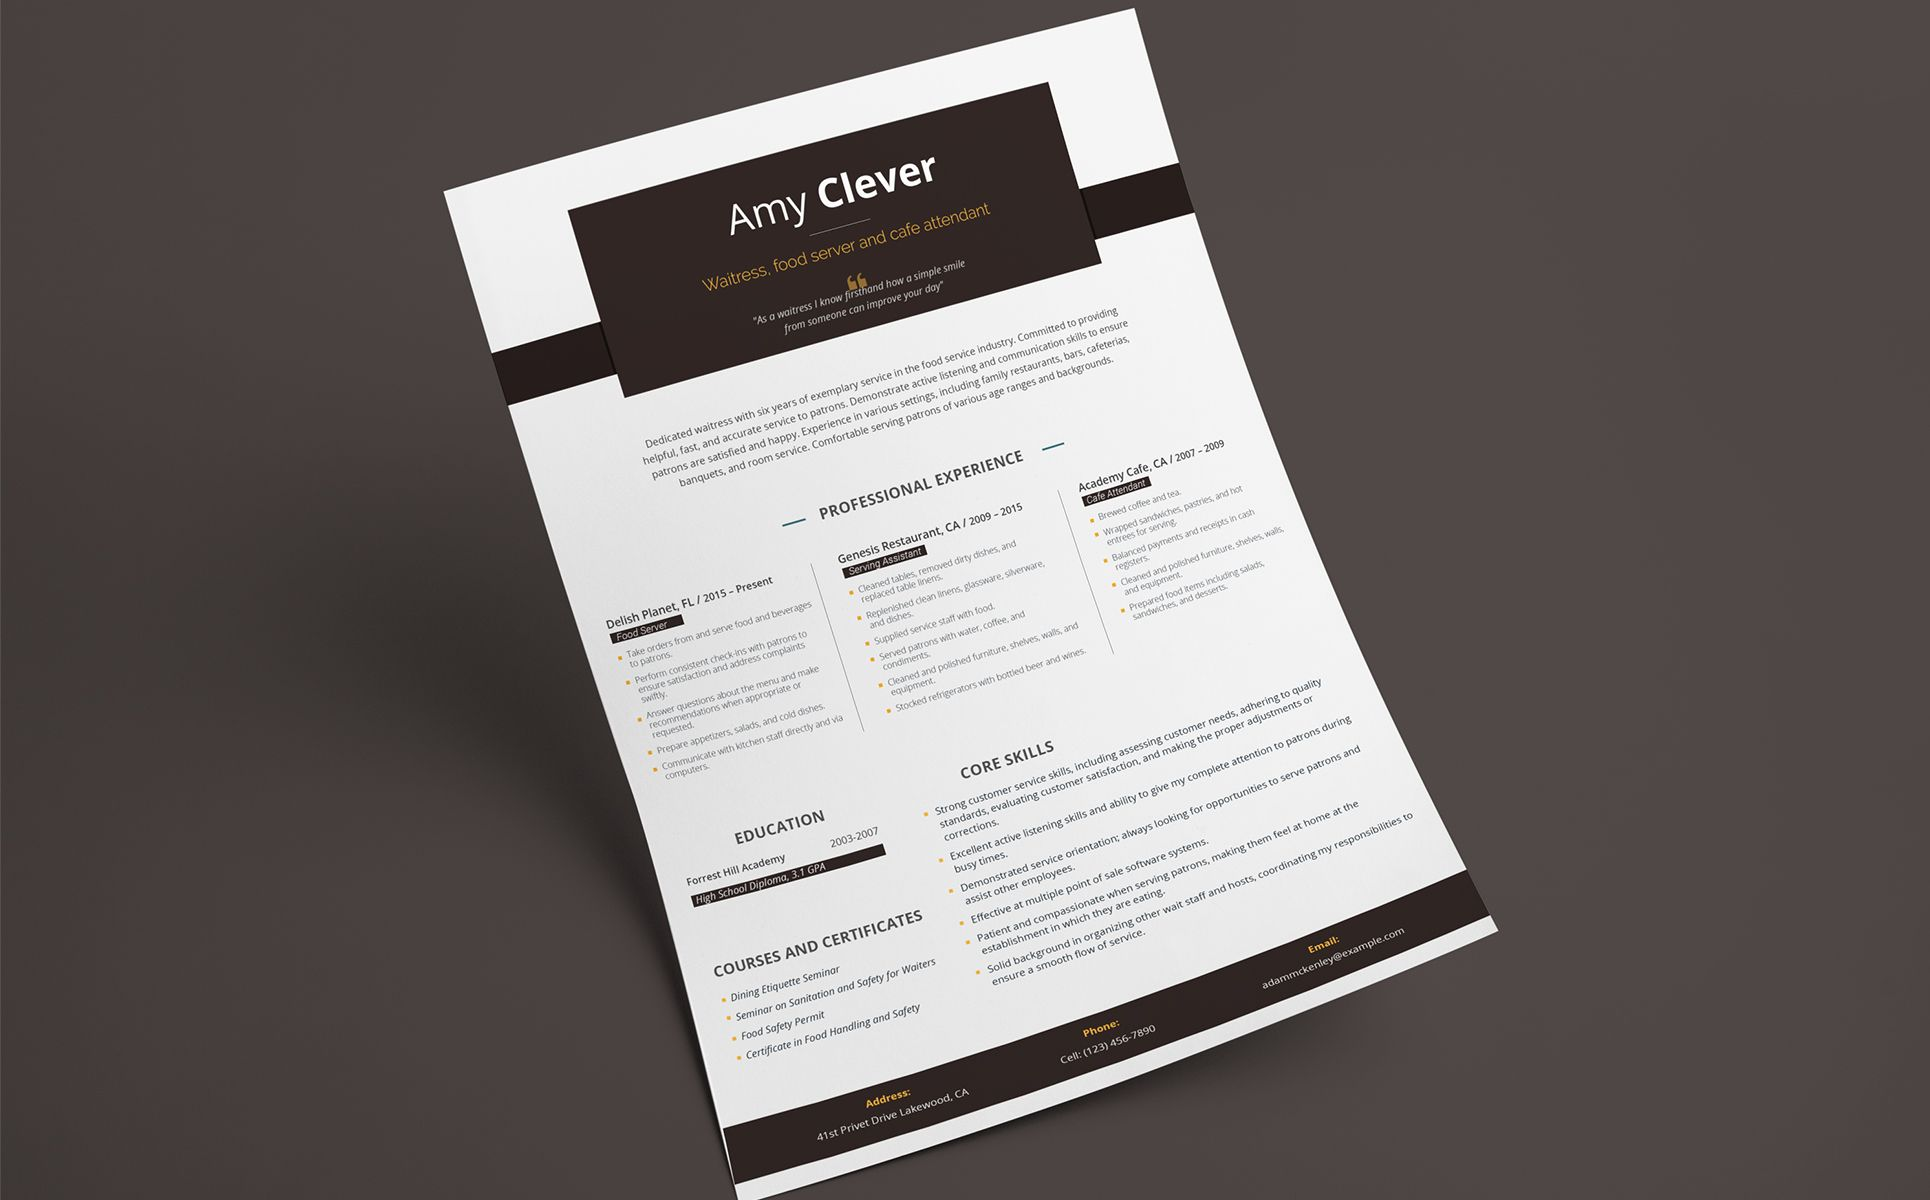 Amy Clever Waitress Food Server And Cafe Attendant Resume Template Waitress Food Amy Clever Resume Resume Template Resume Social Media Design Graphics